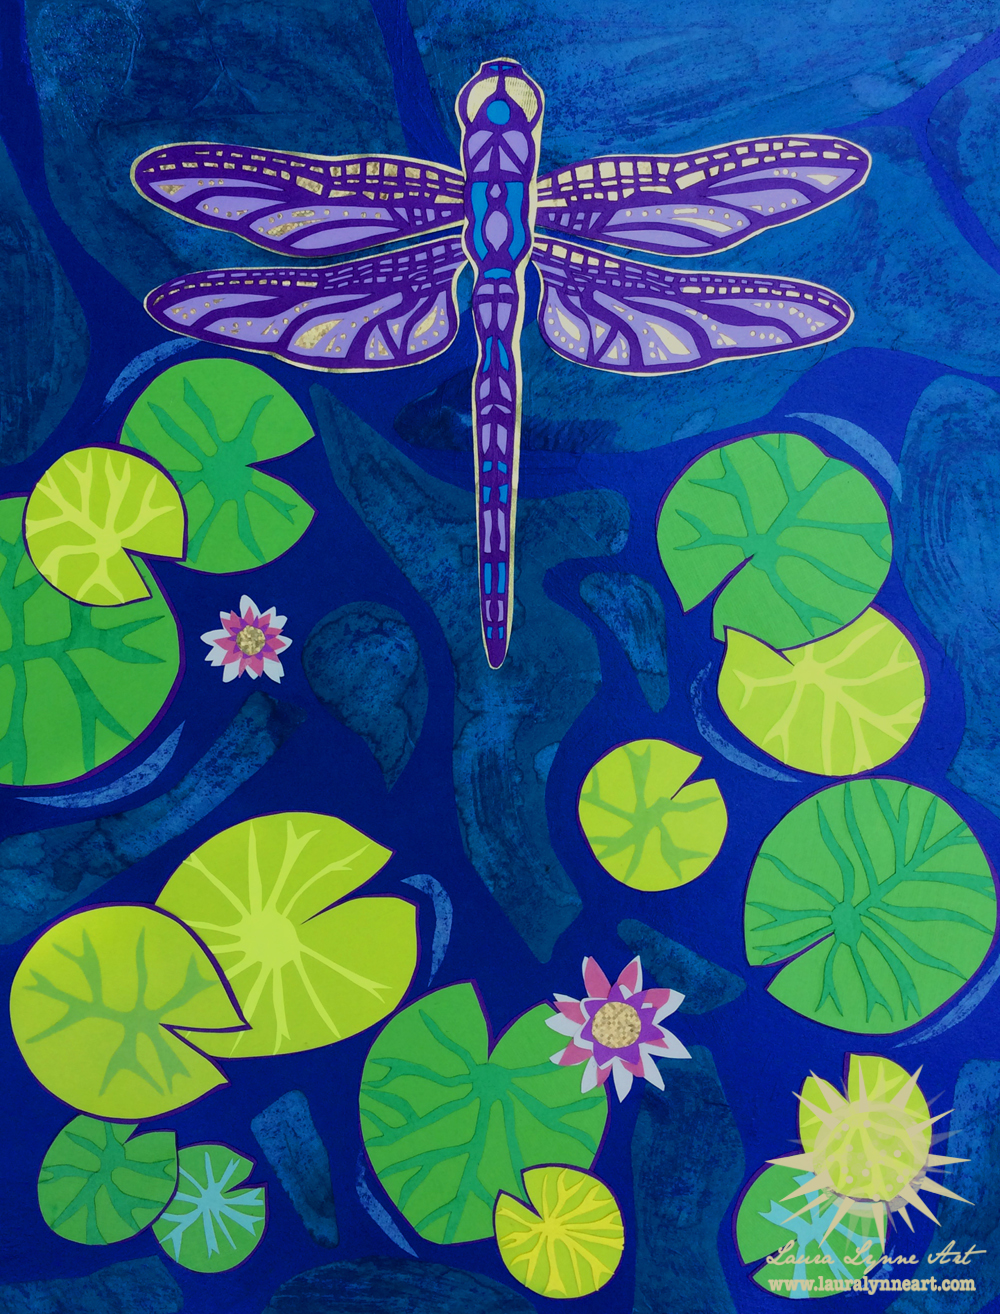 Colorful blue modern dragonfly wall art print for sale by Laura Lynne Art